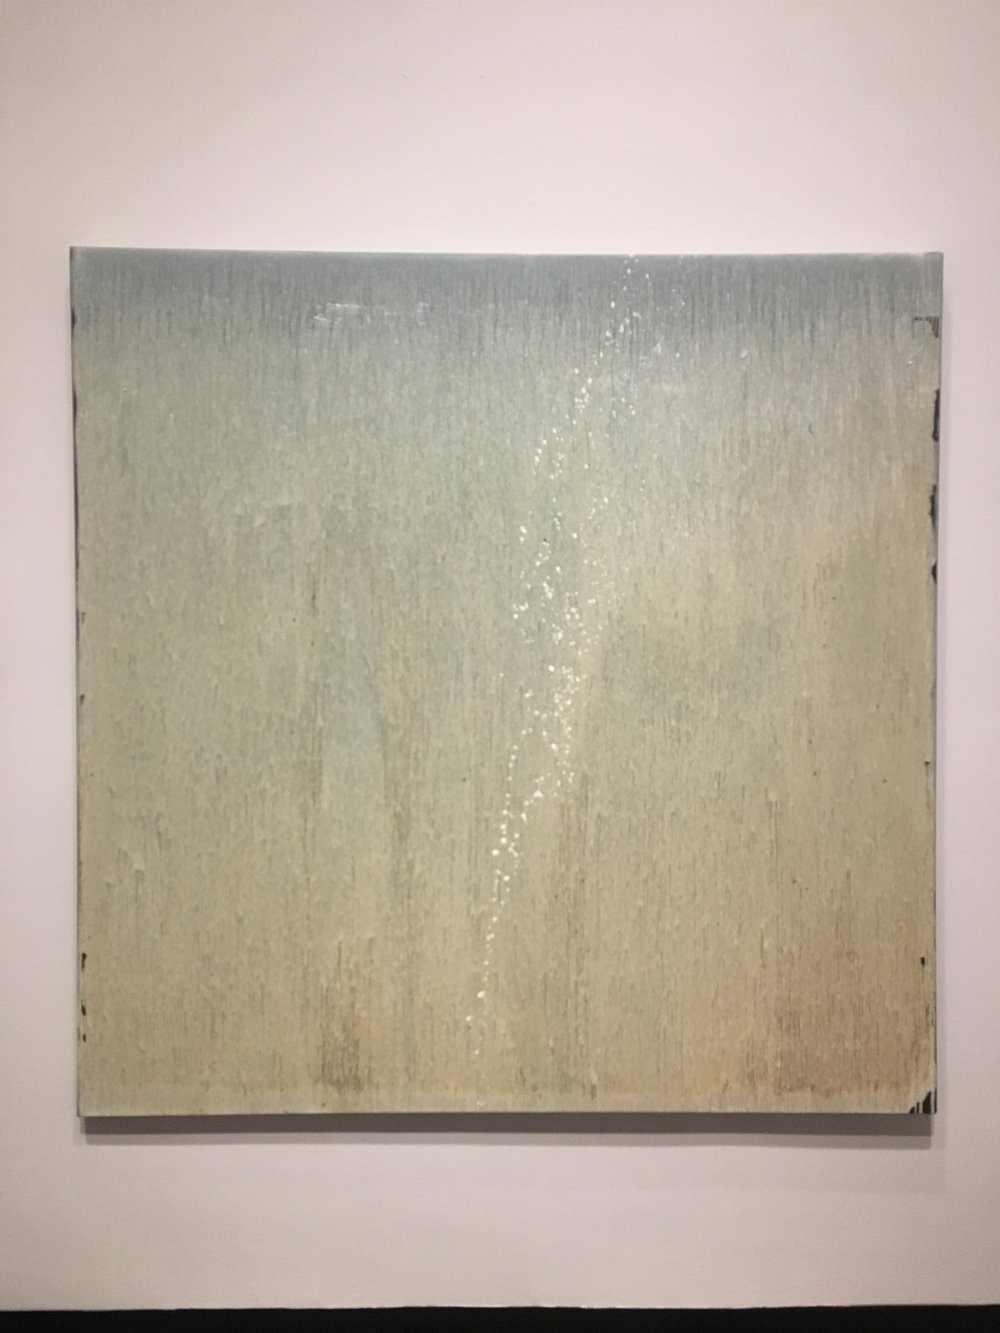 Pat Steir,  White Moon Mist , 2006.